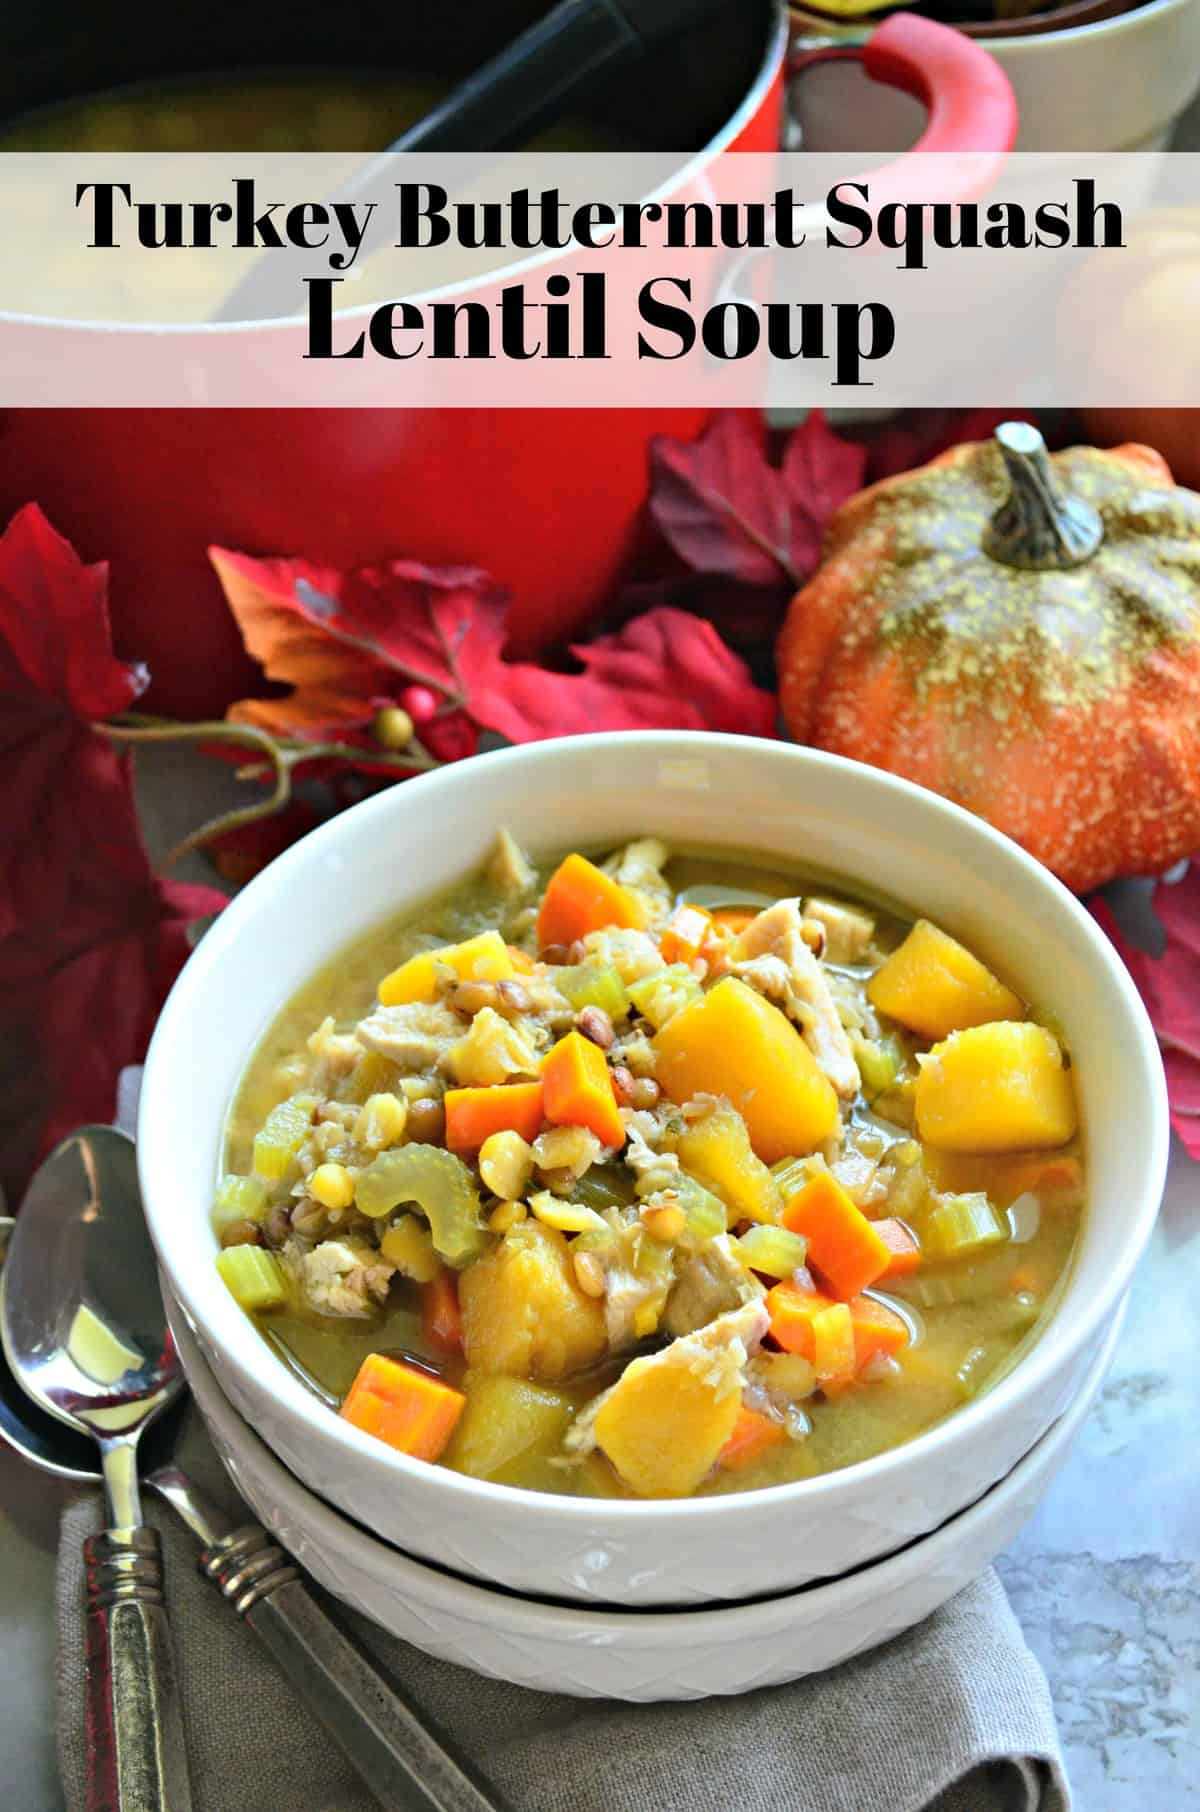 Turkey Butternut Squash and Lentil Soup in white bowl on table with fake decorative fall leaves and title text.